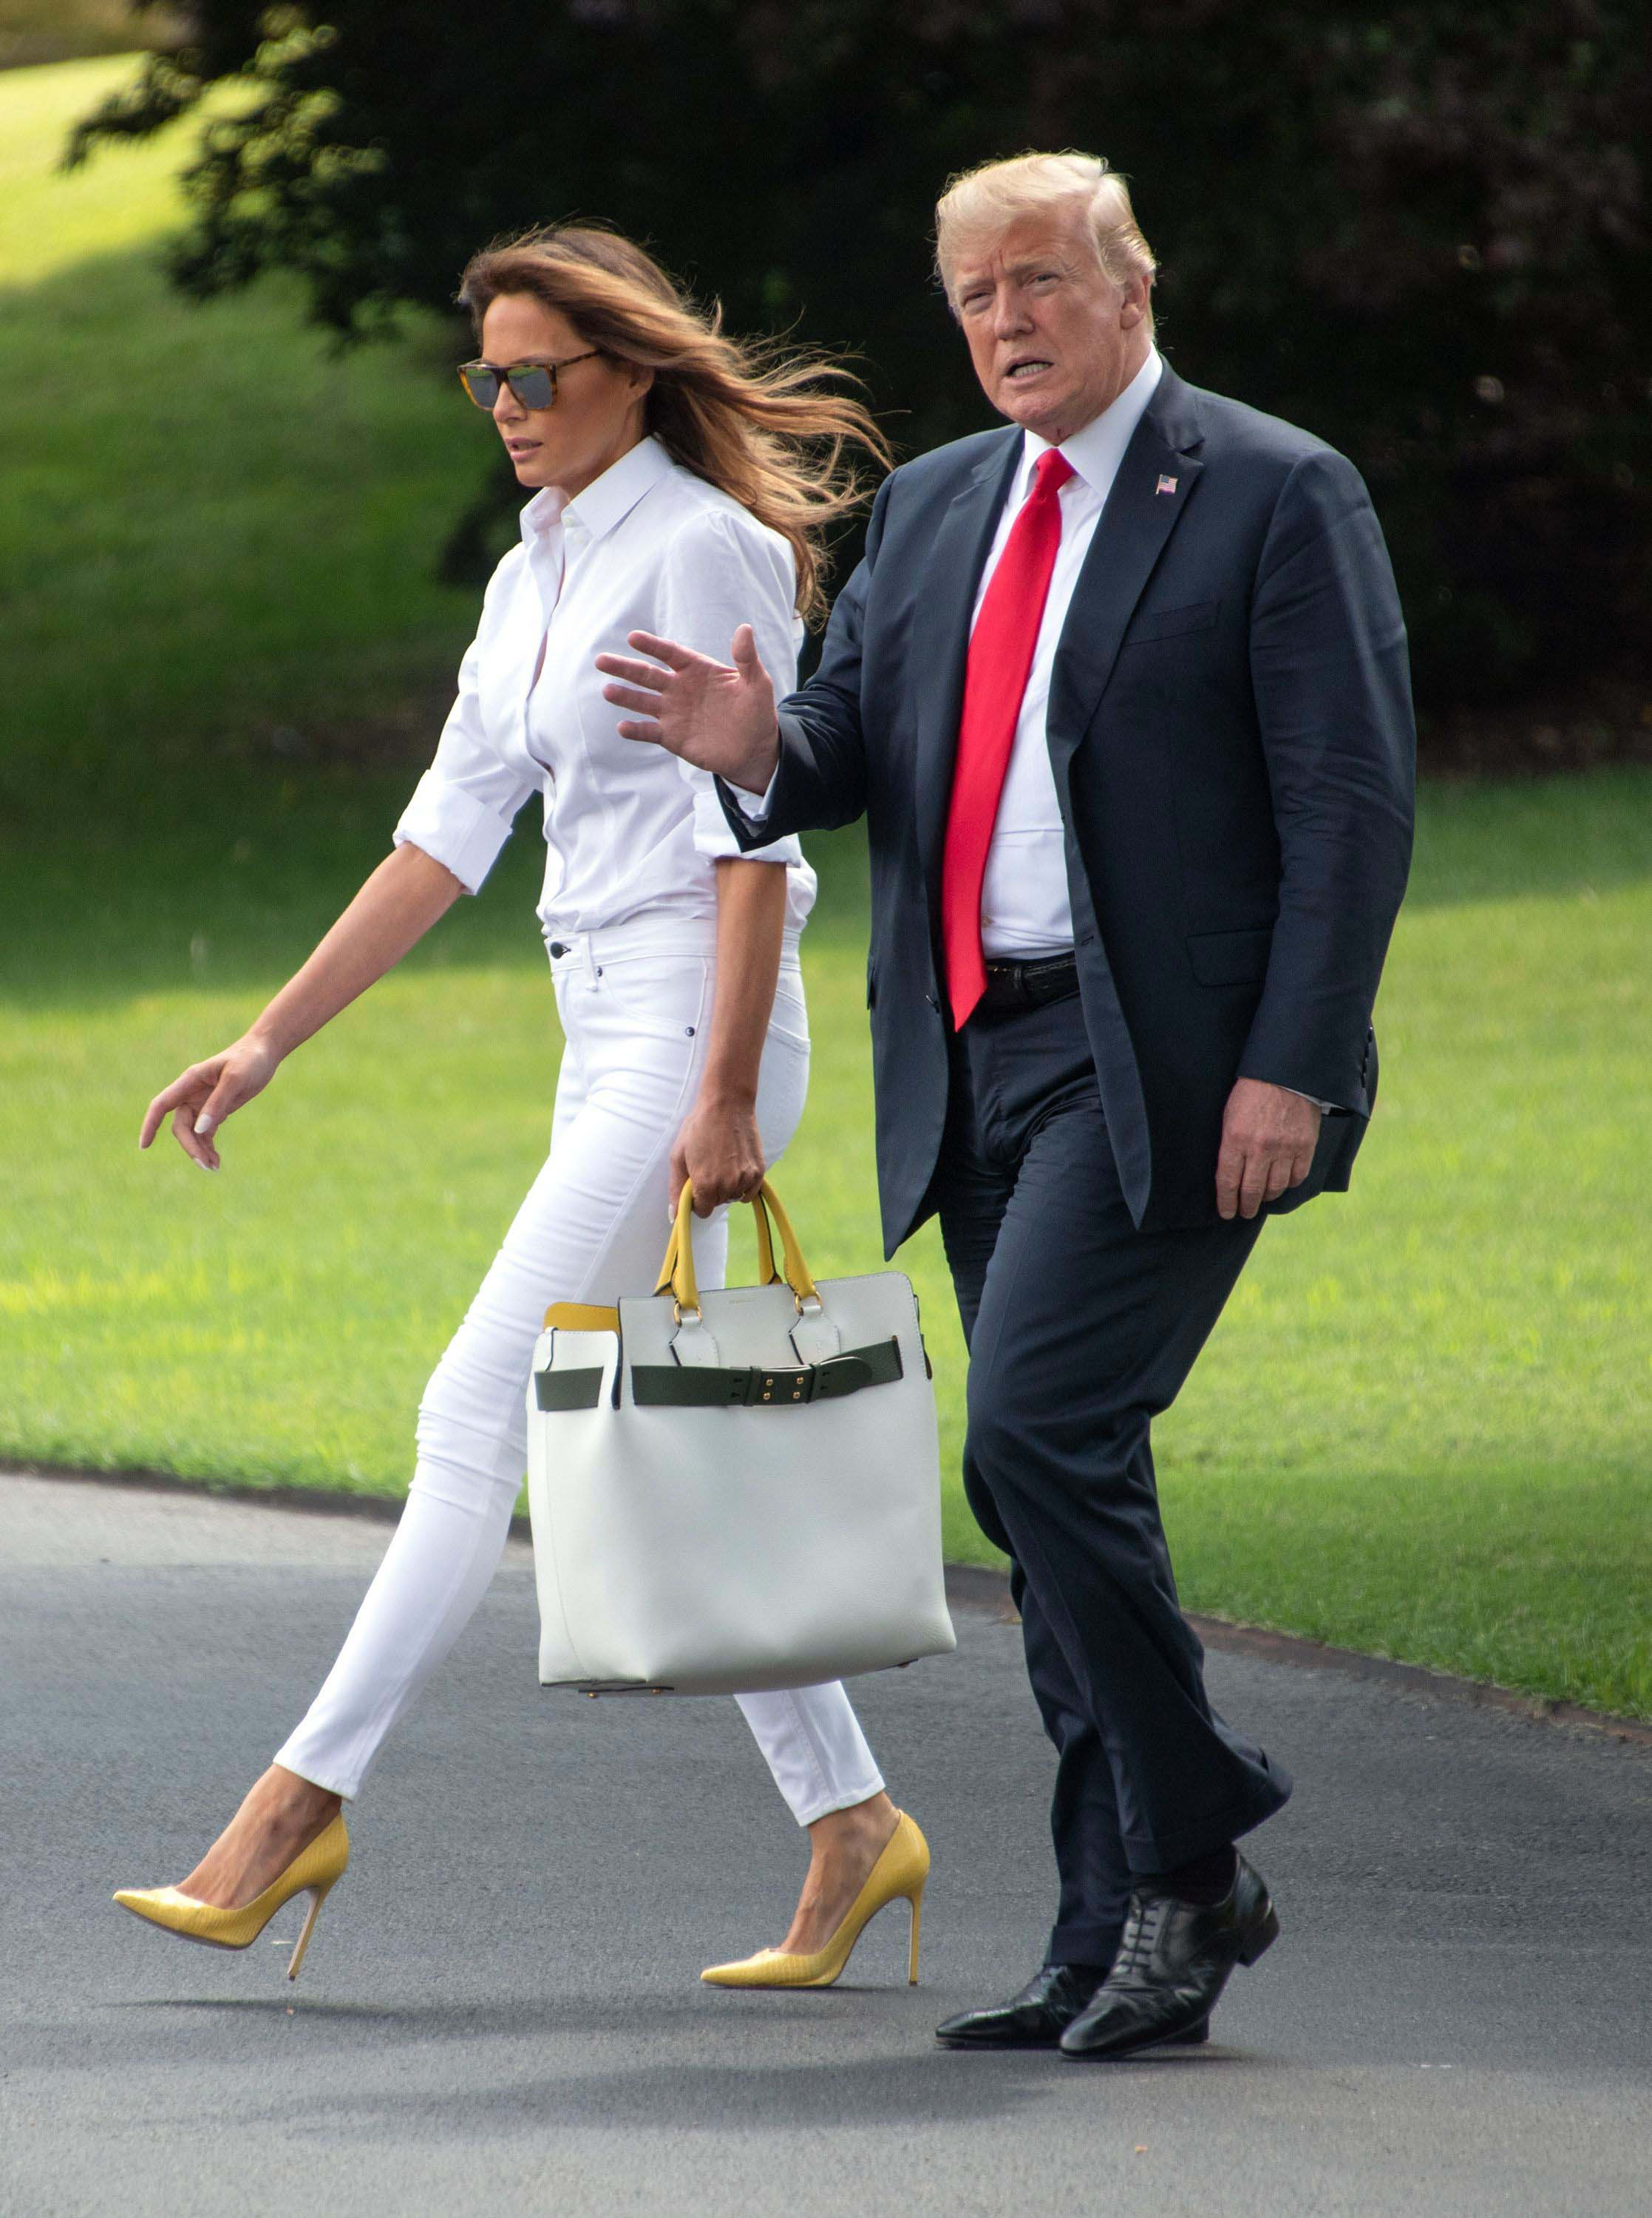 manolo blahnik bb pumps, United States President Donald J. Trump waves to the press as he and first lady Melania Trump depart the South Lawn of the White House in Washington, DC en route to Bedminster, New Jersey.Donald Trump departs the White House, Washington, DC - 27 Jul 2018